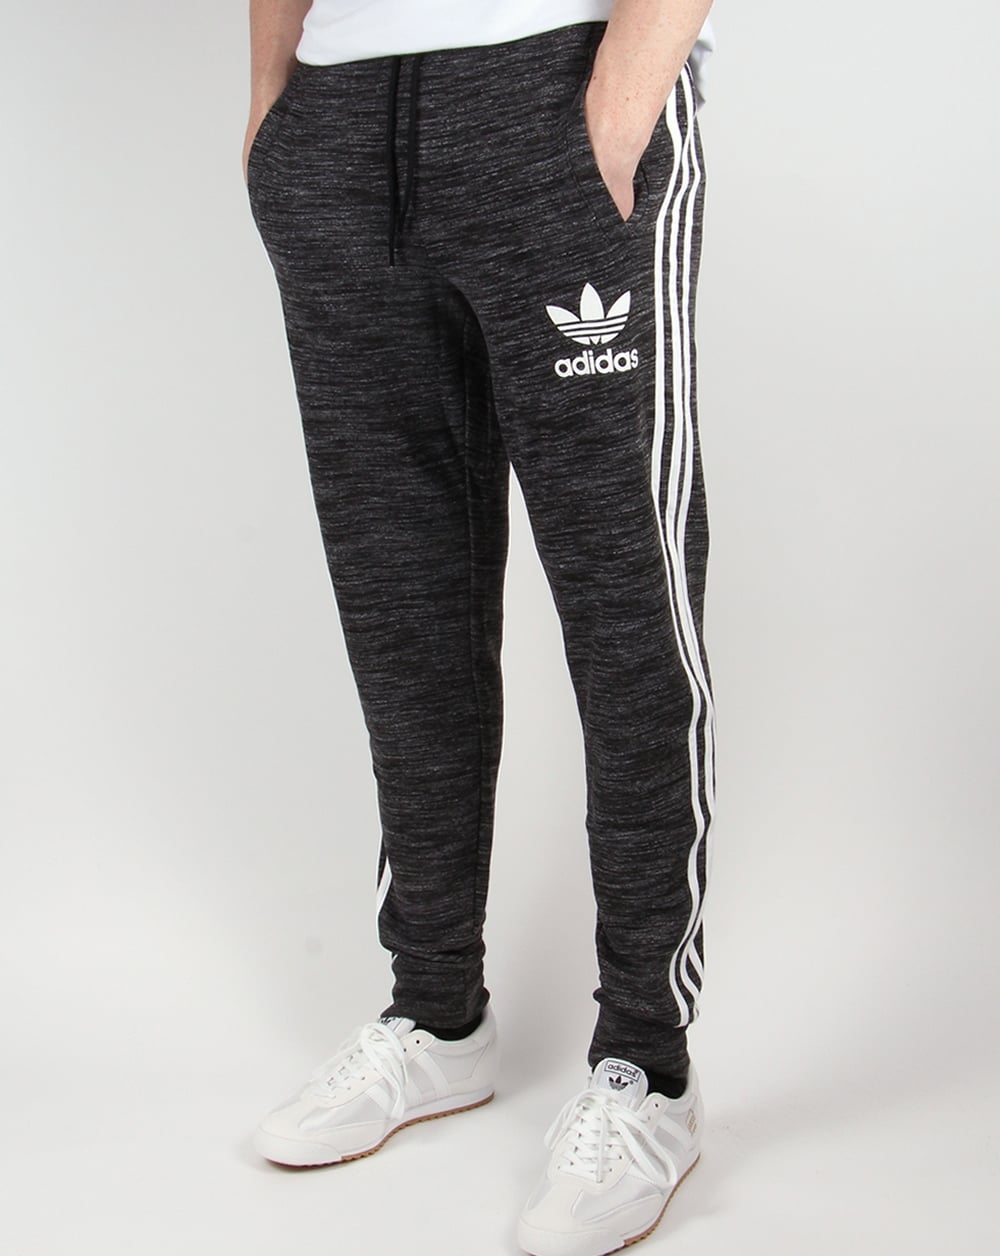 adidas originals california joggers